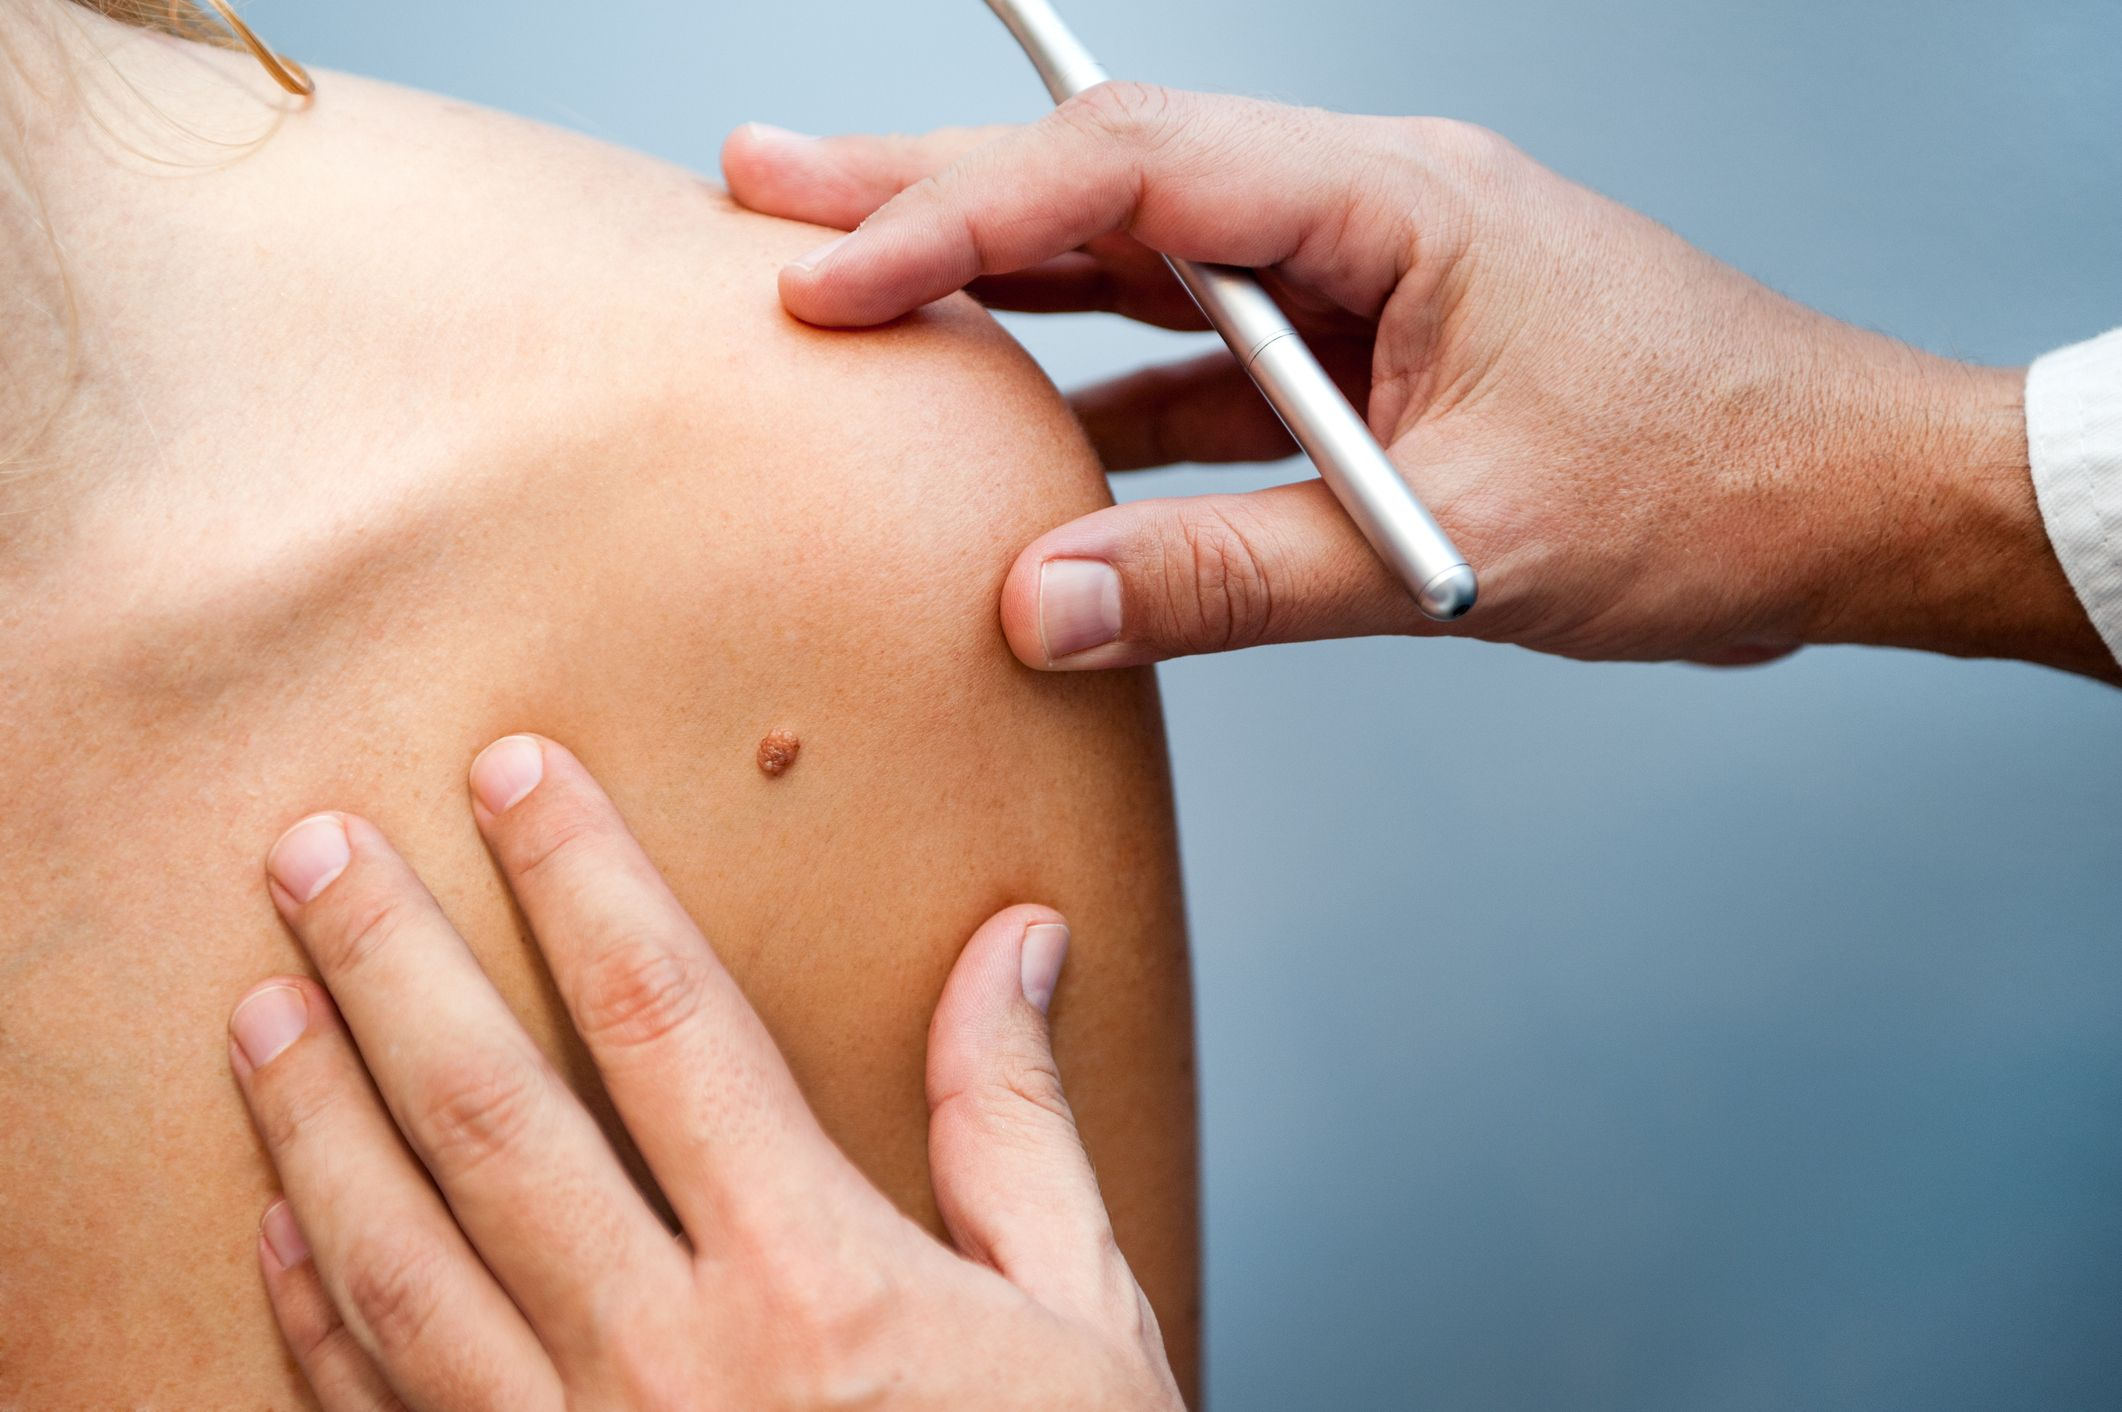 Skin Cancer How To Check Your Moles And Spot Cancer Signs Early